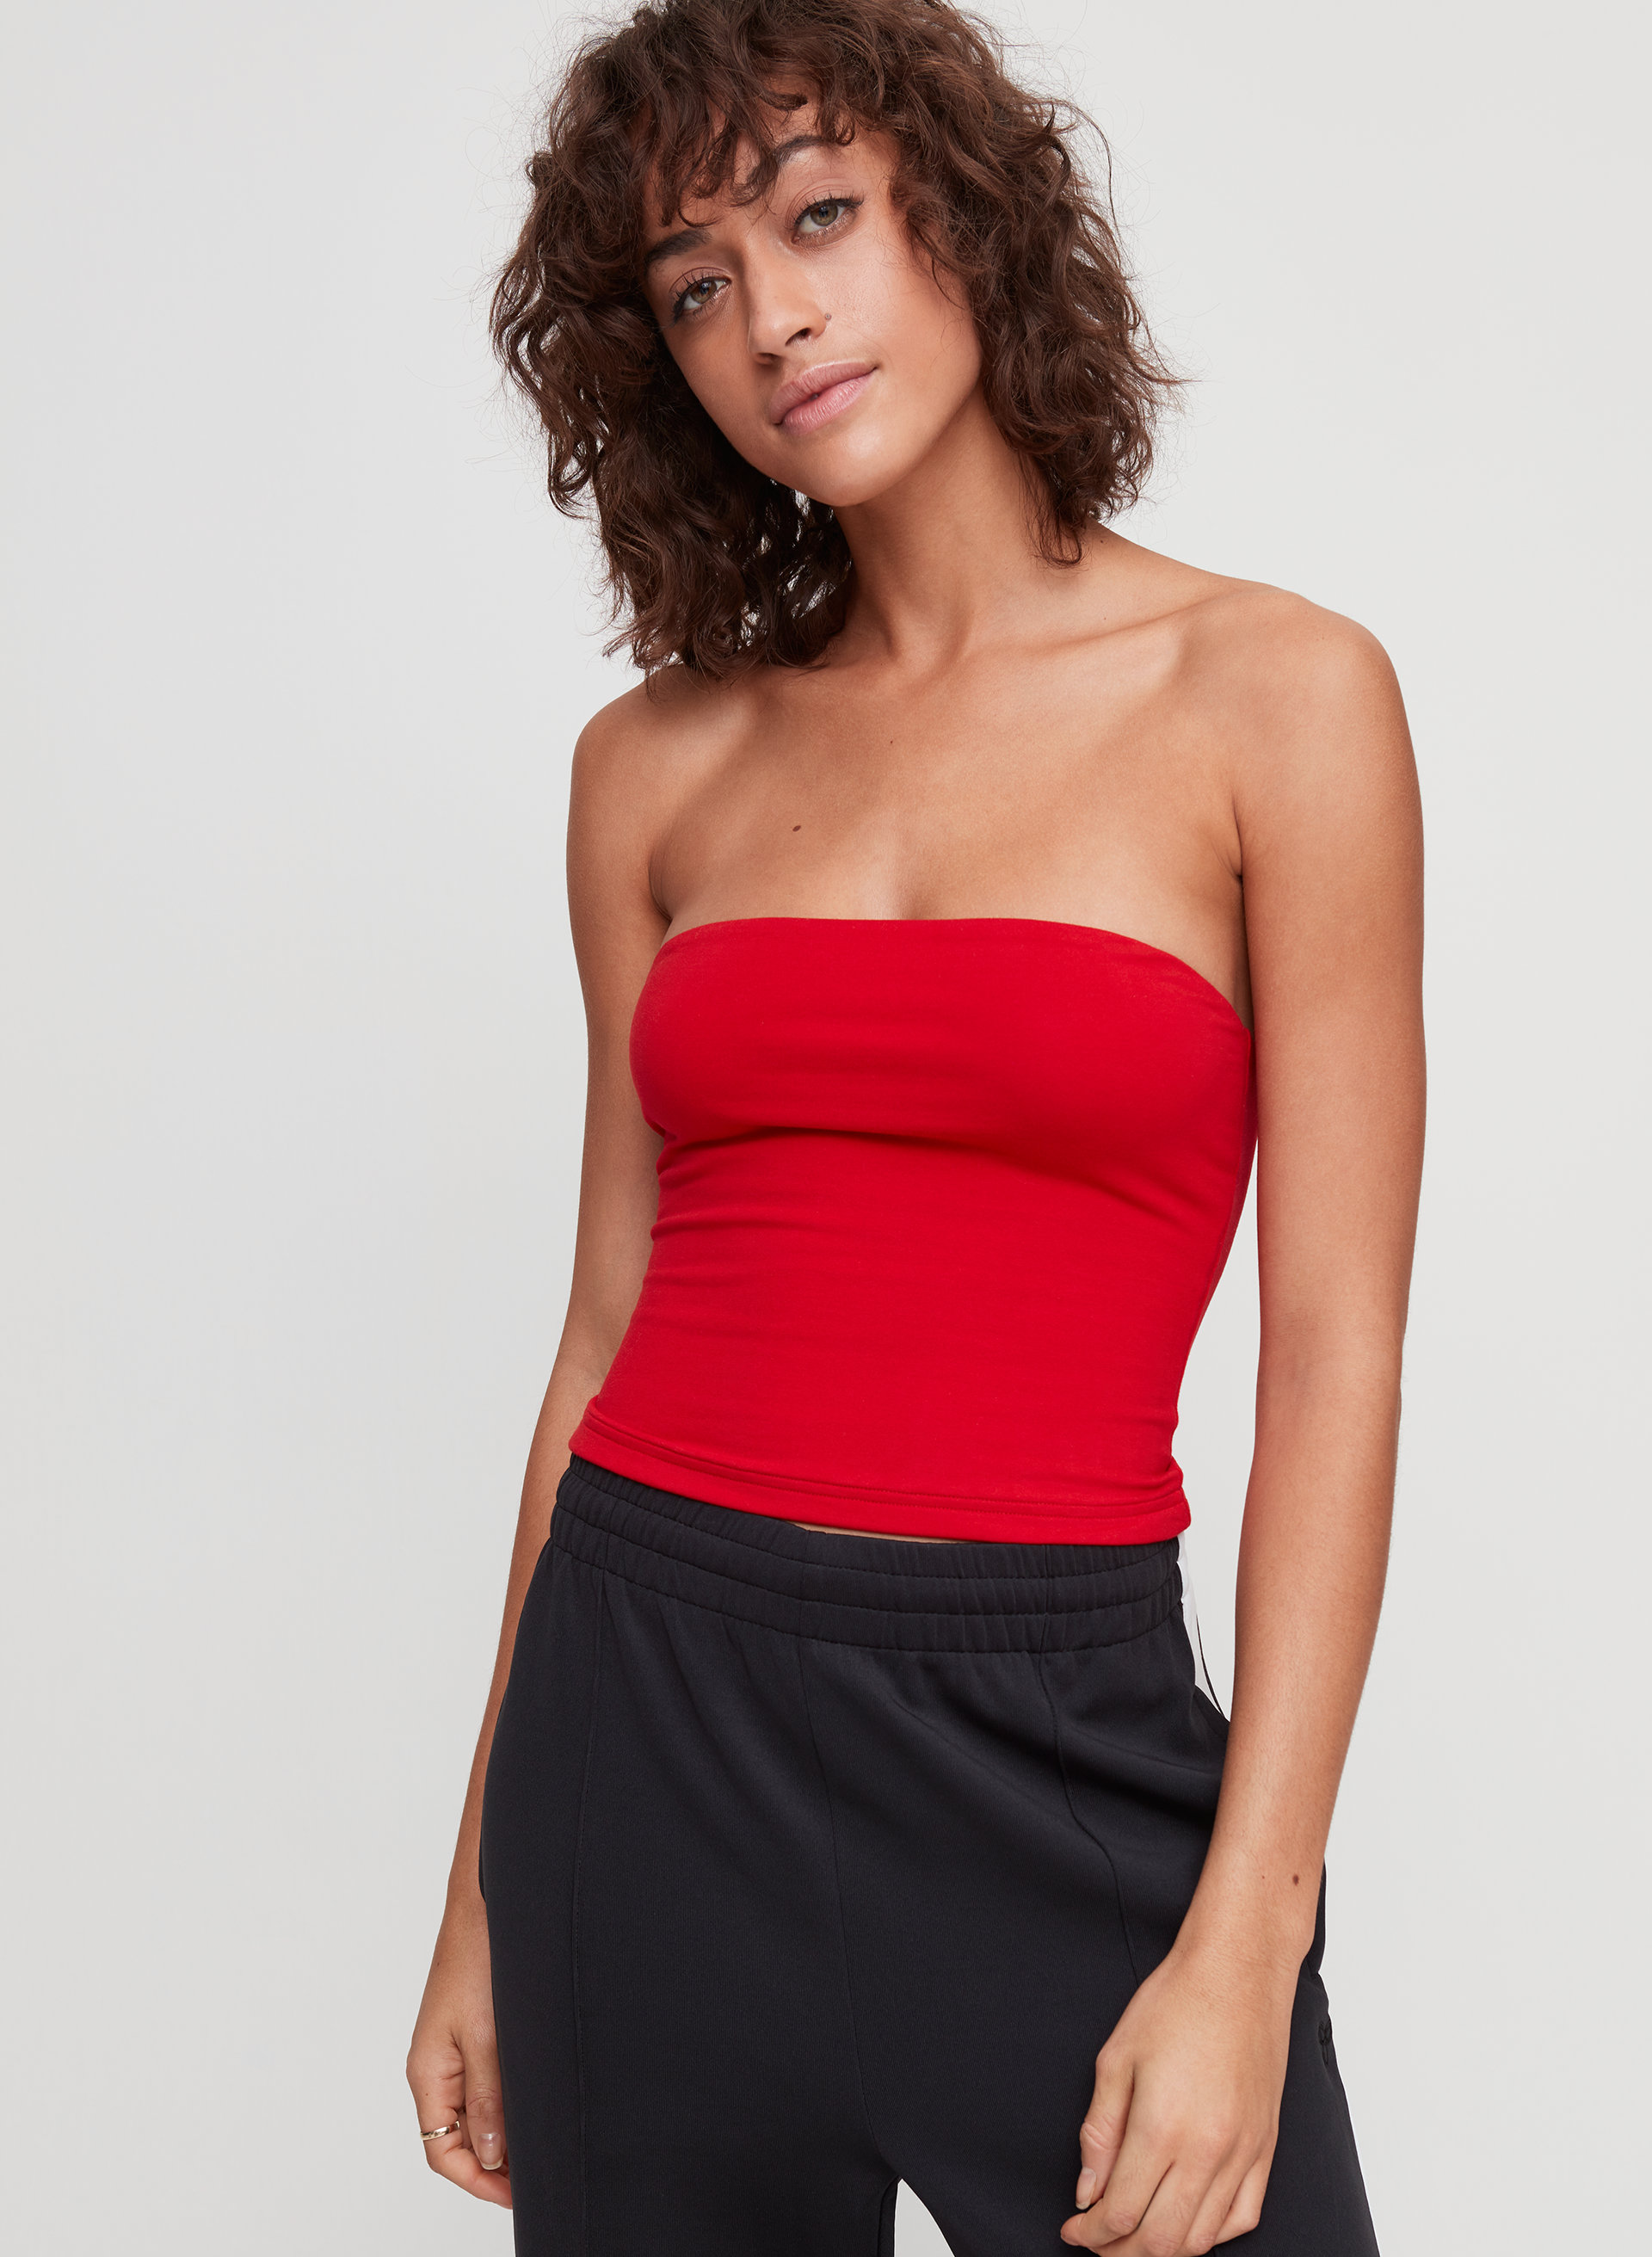 f63733015da Tna tube top aritzia jpg 1920x2623 90s tube top